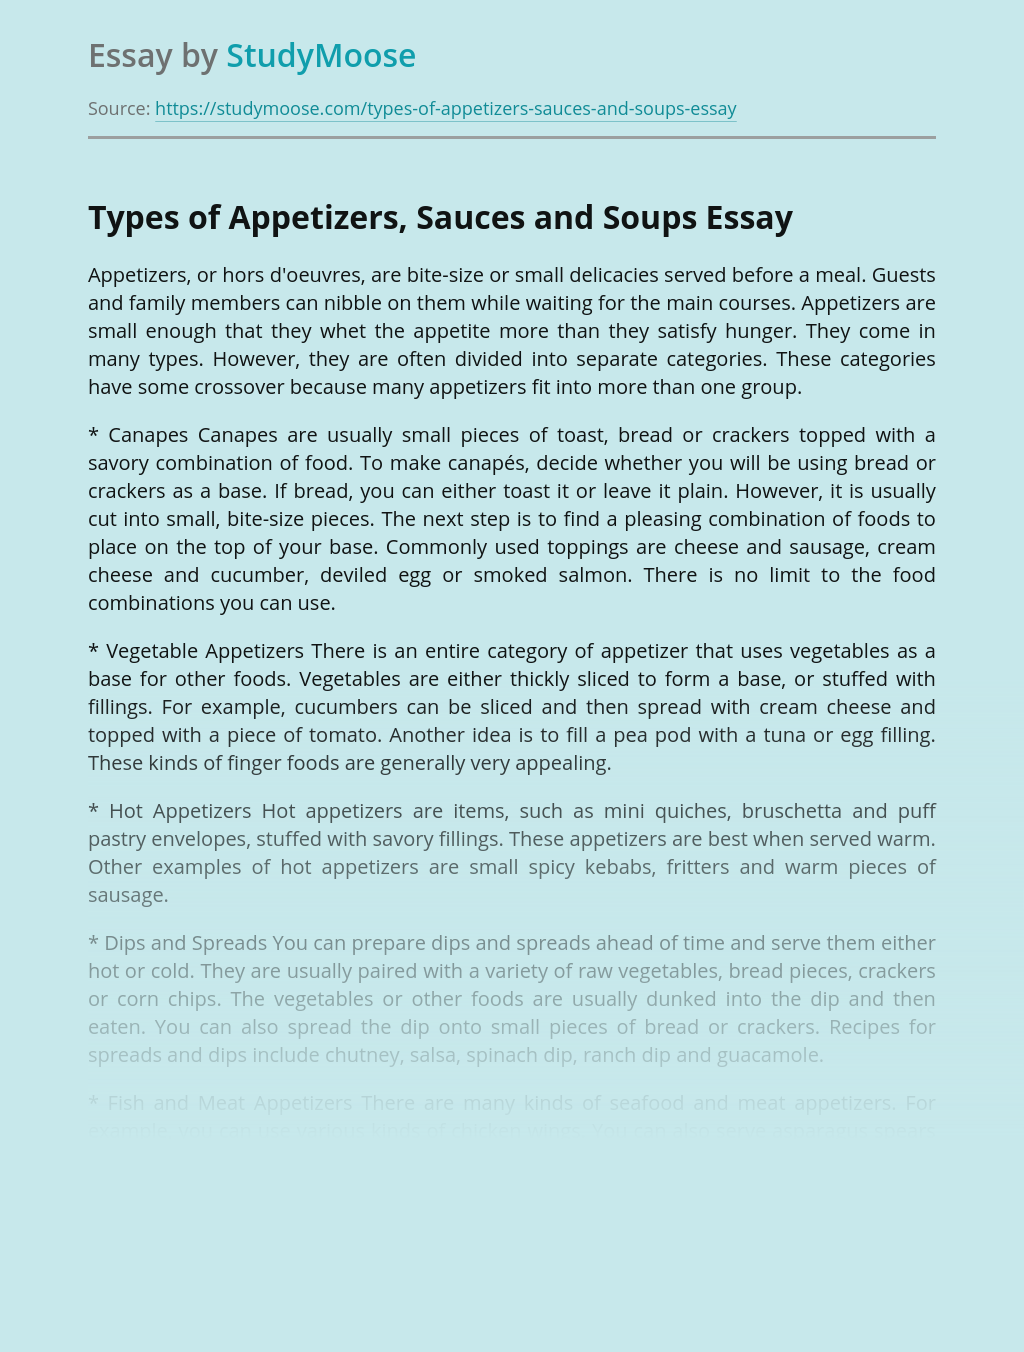 Types of Appetizers, Sauces and Soups